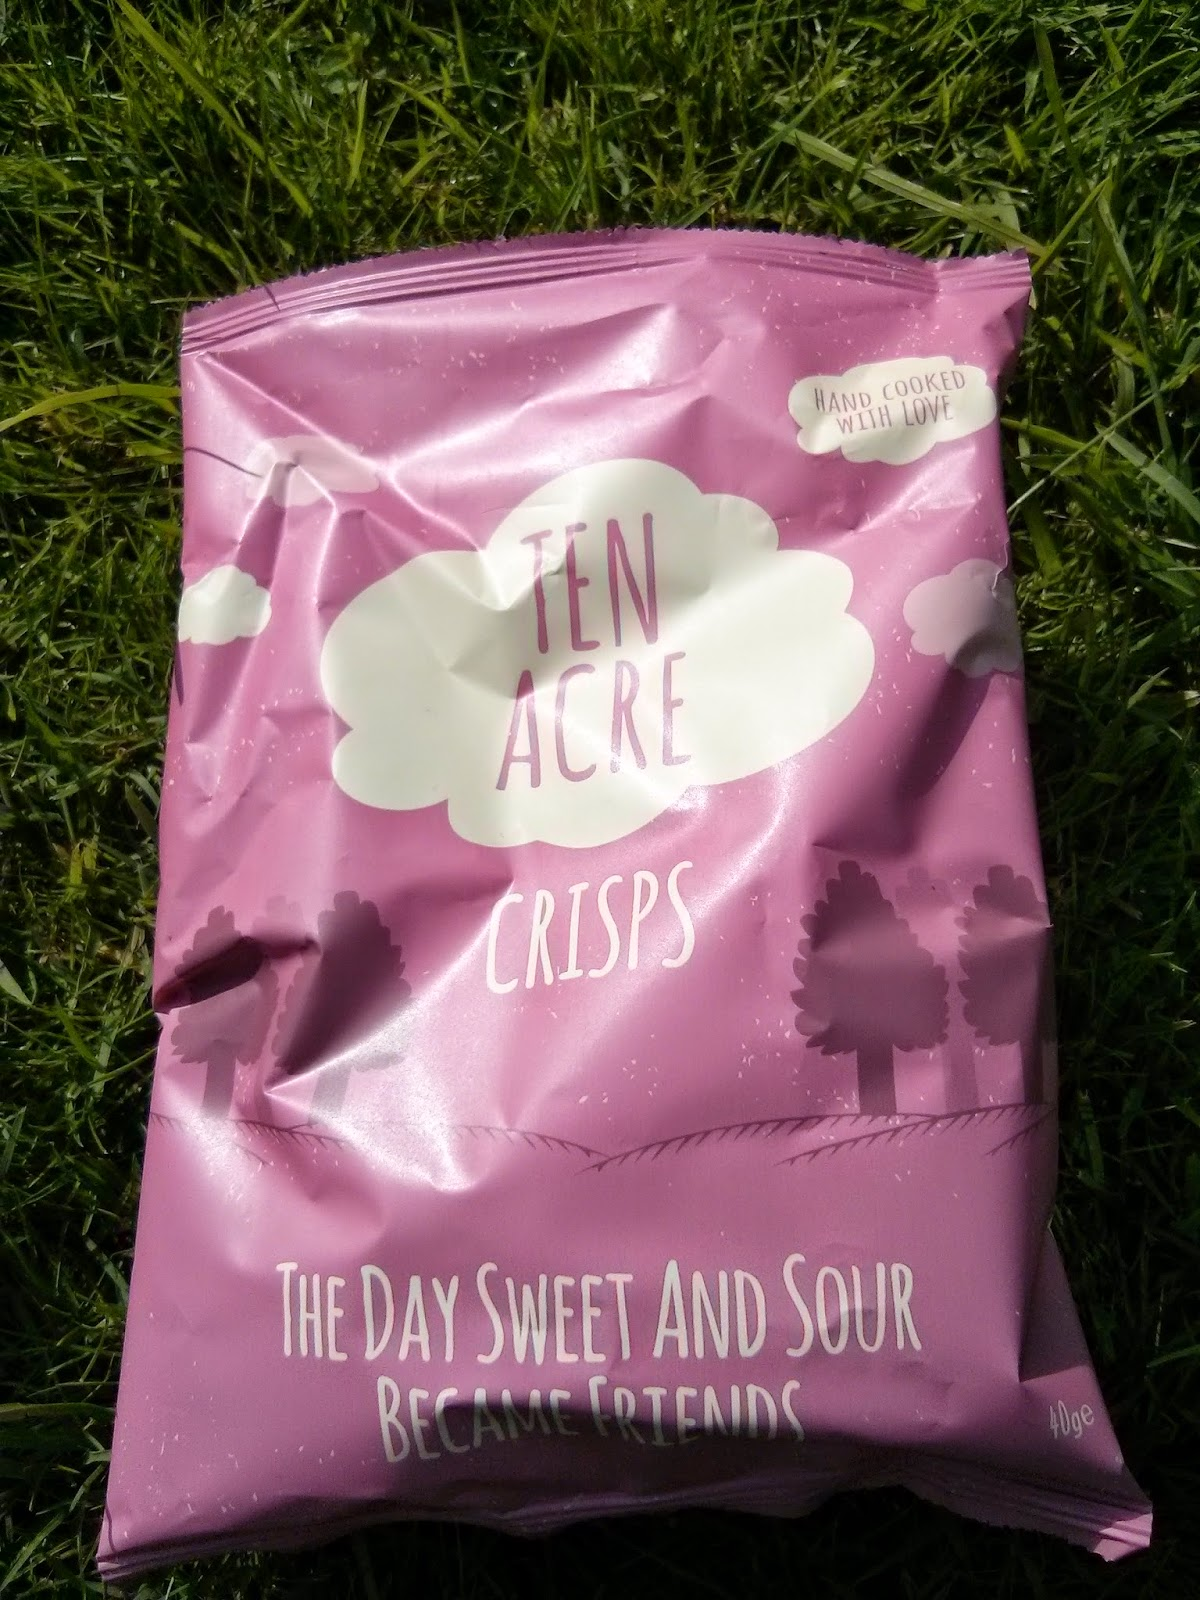 Vegan Tuck Box, Ten Acre Crisps